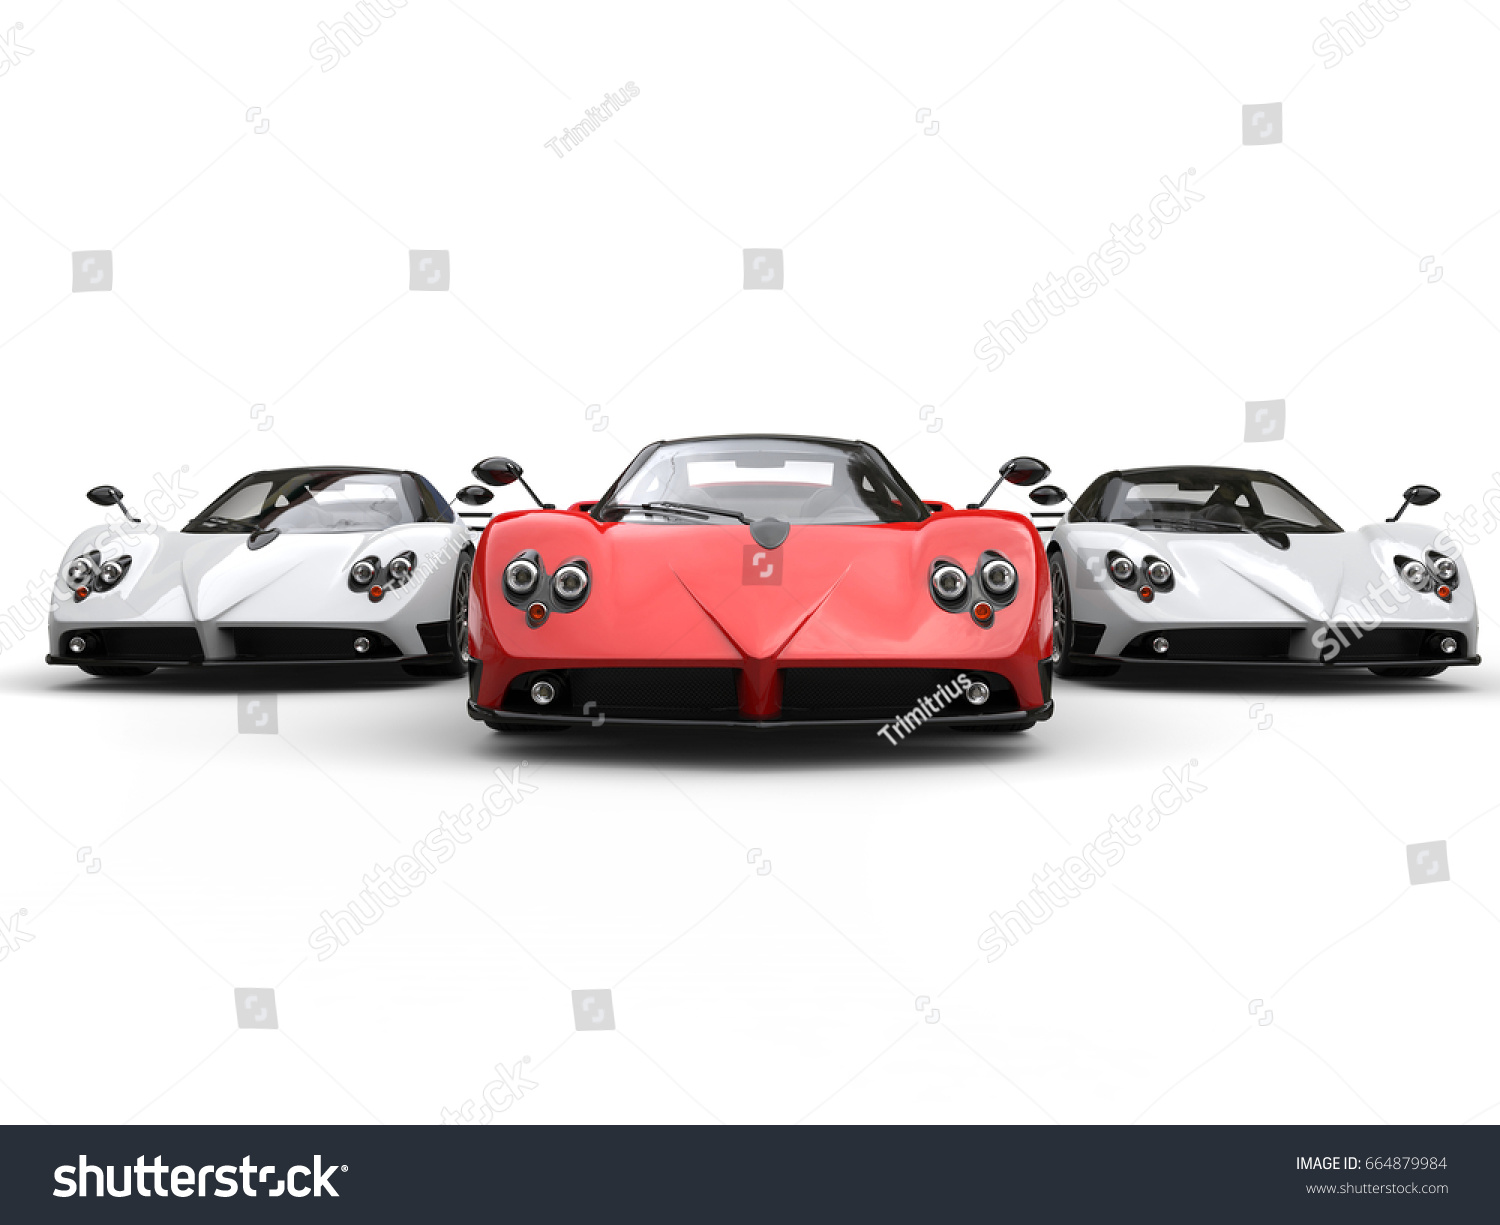 Spartan red super car front white stock illustration 664879984 spartan red super car in front of white super cars 3d illustration biocorpaavc Images